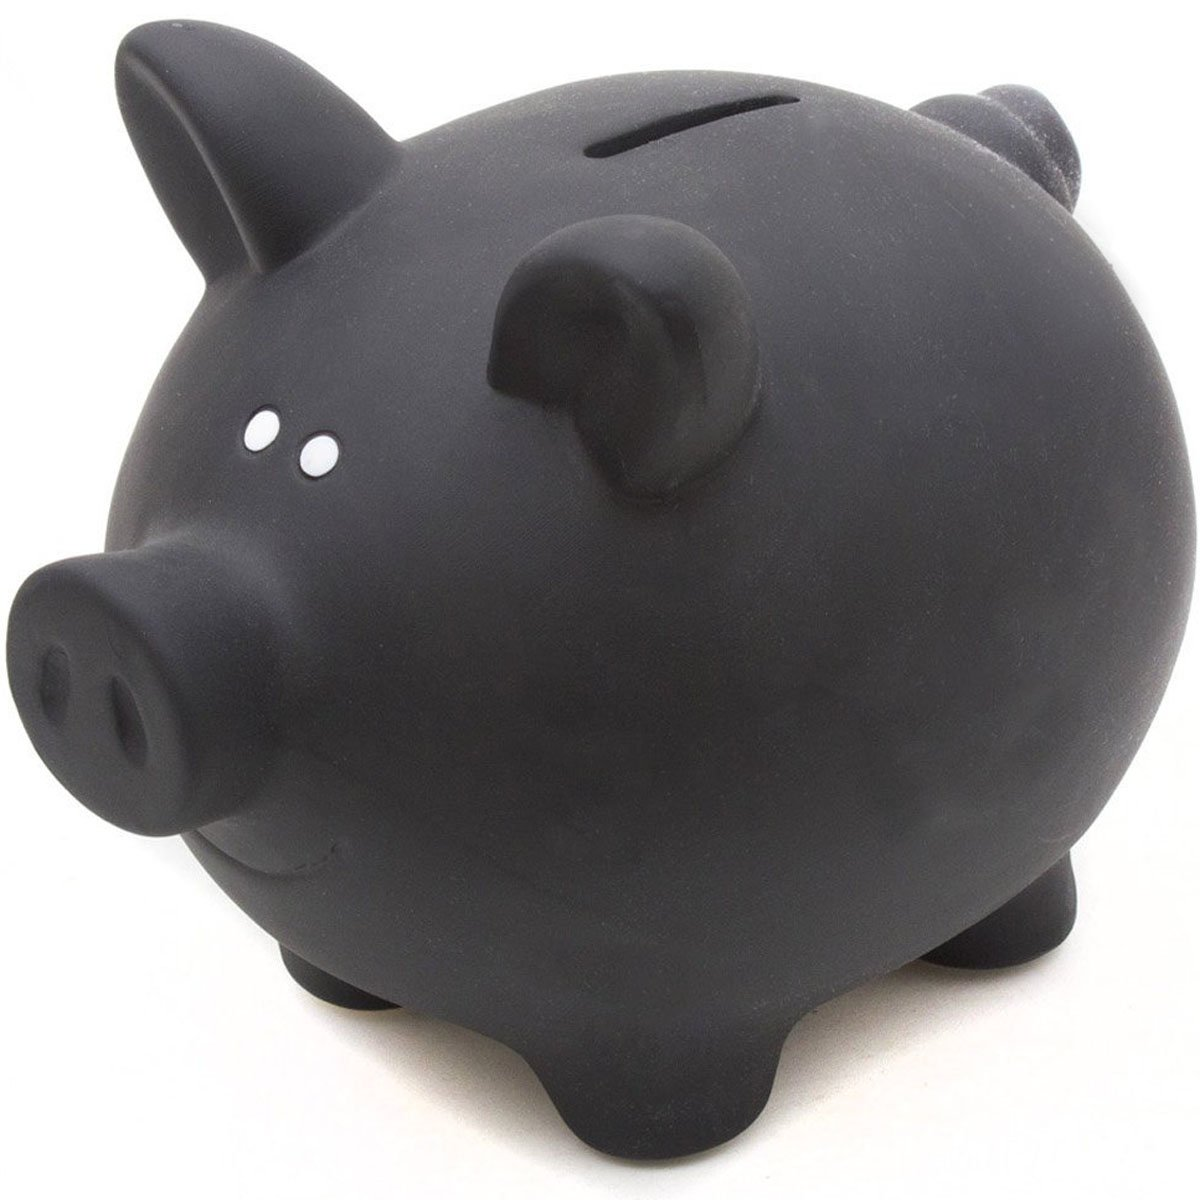 Ceramic Blackboard Piggy Bank for Writing on with Chalk Goods & Gadgets